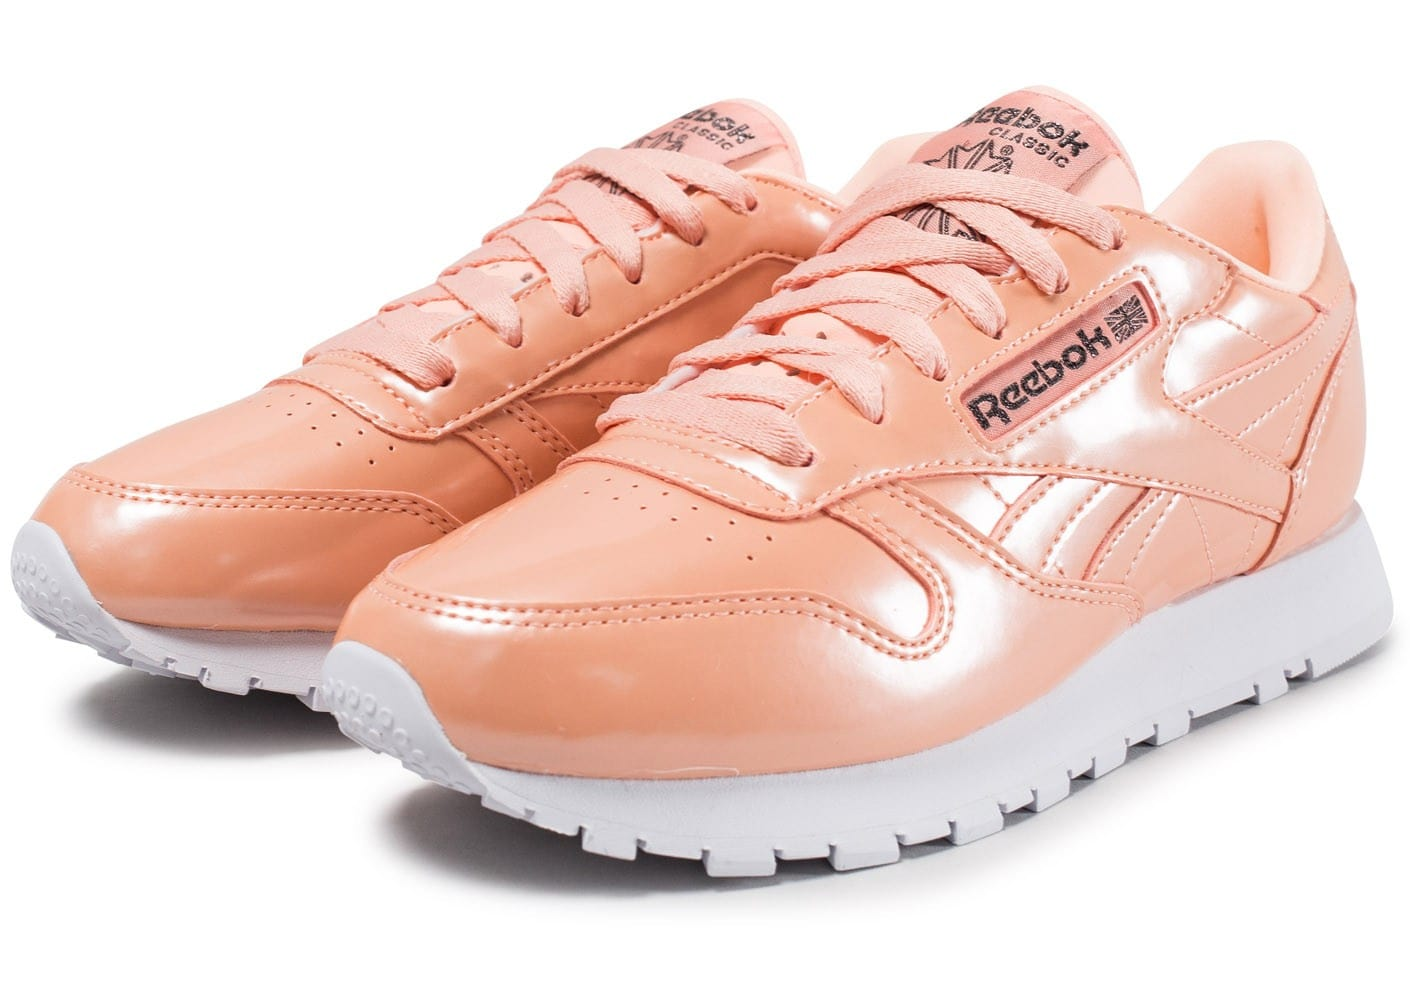 Reebok Classic Leather PP orange Chaussures Baskets femme